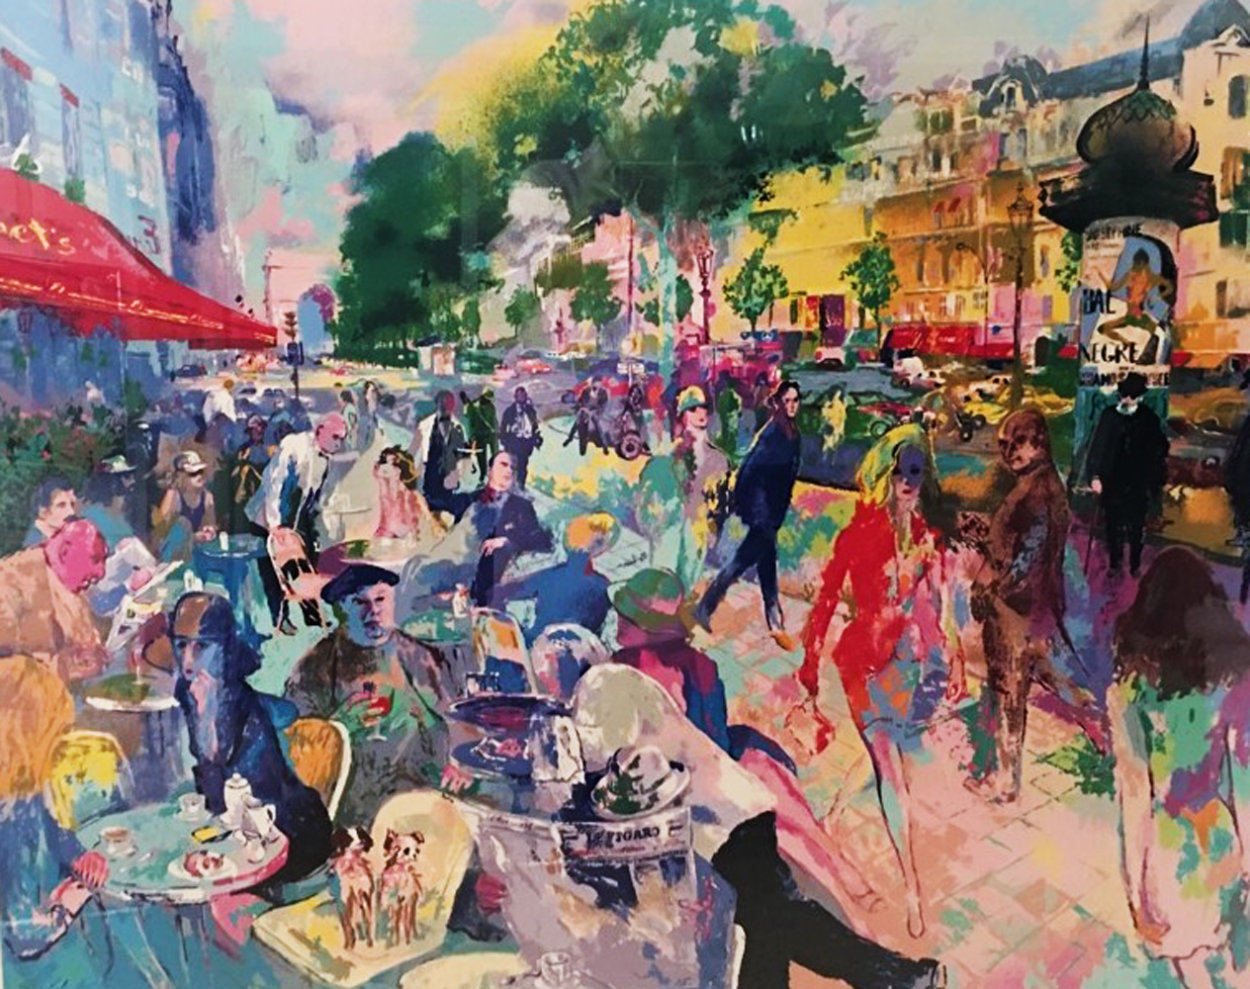 Cafe Fouquets 1993 Limited Edition Print by LeRoy Neiman